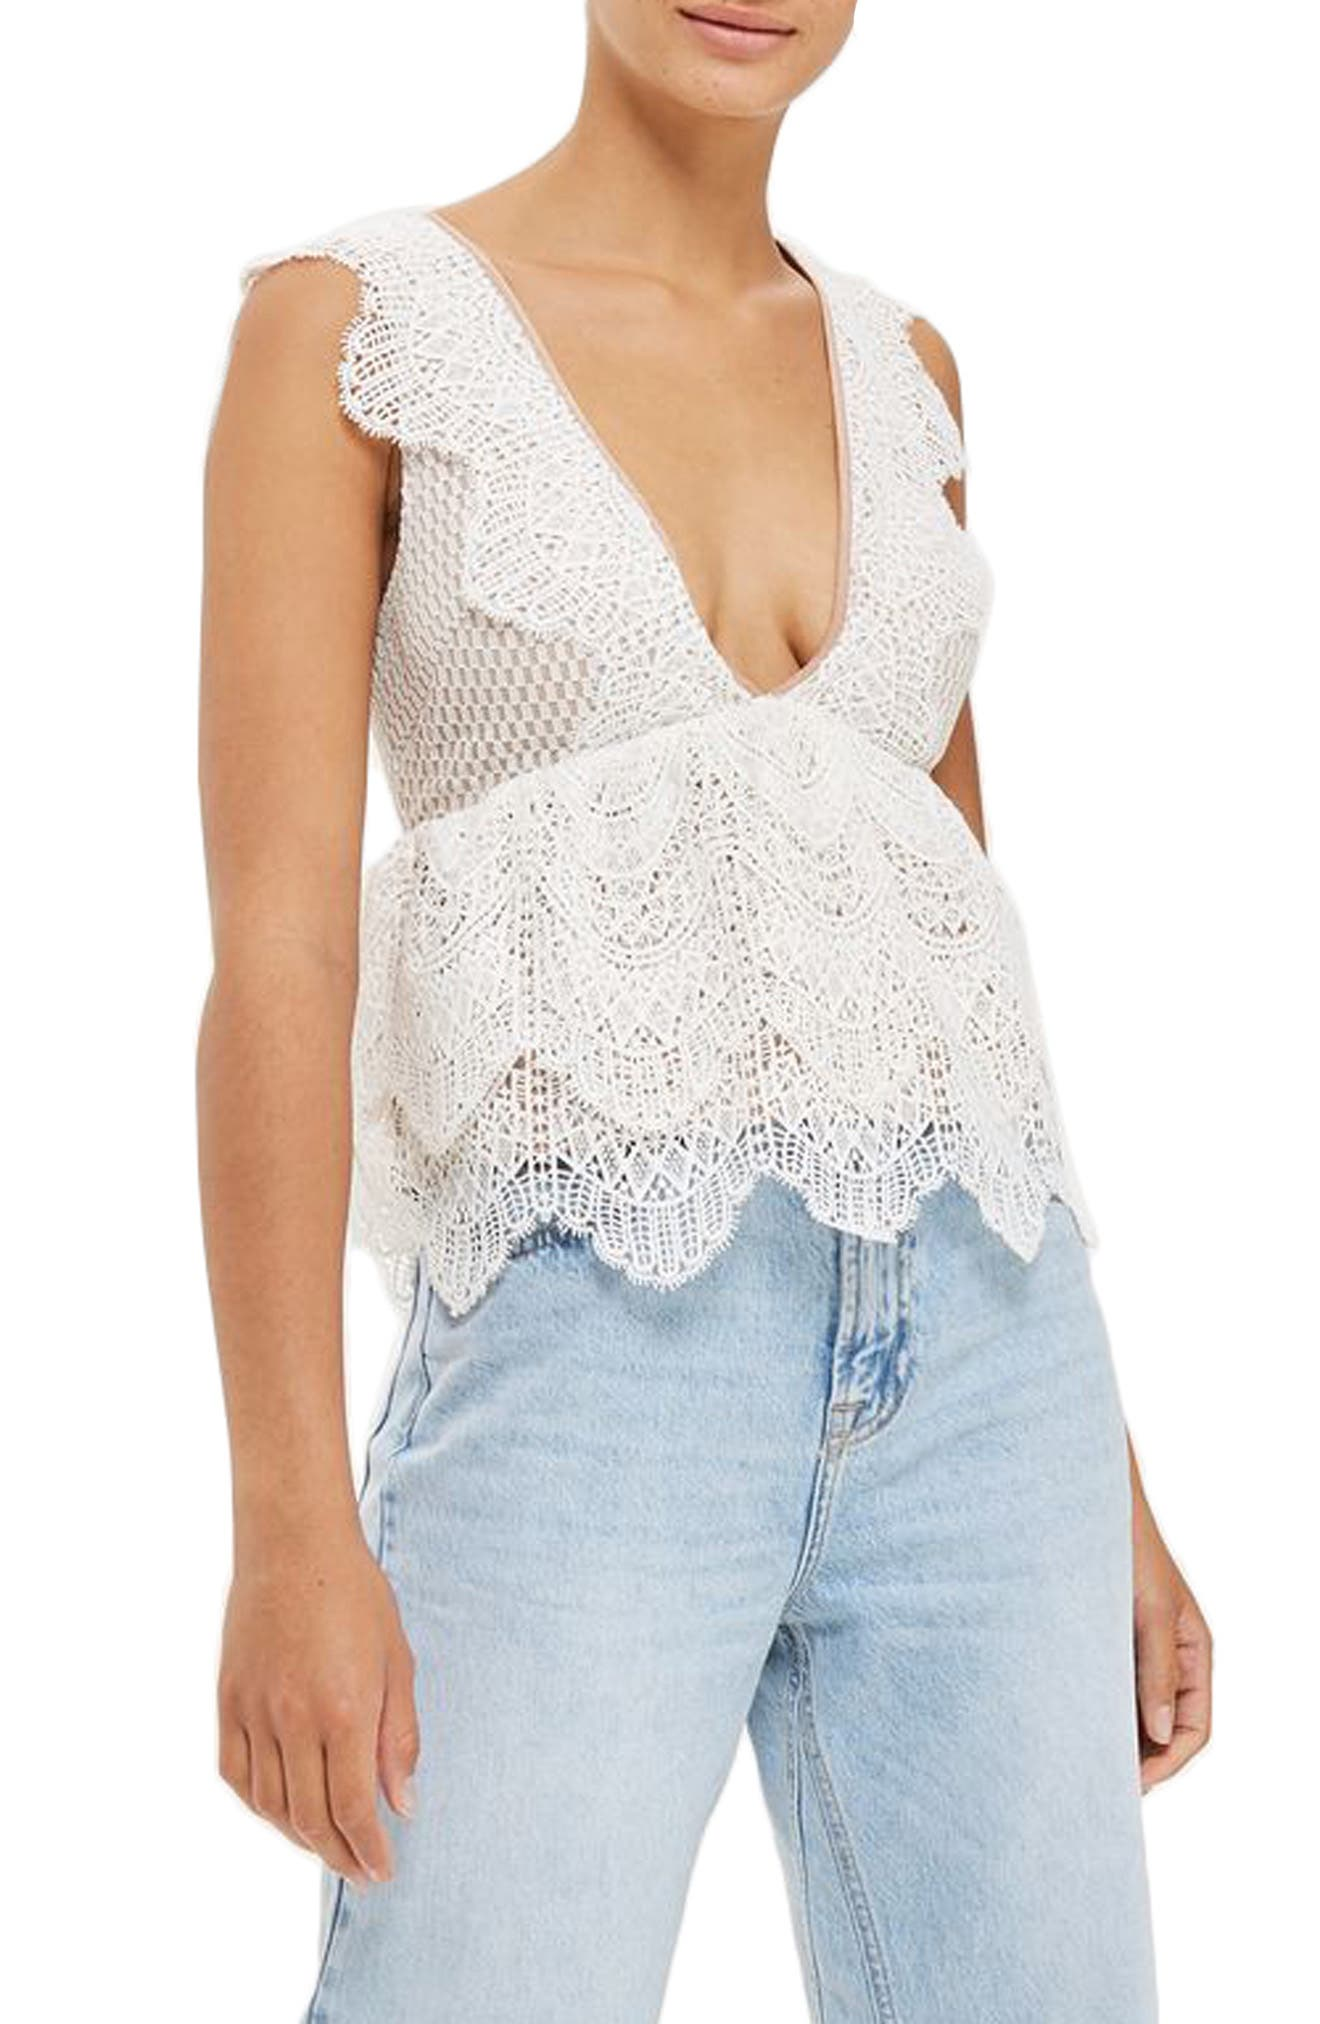 Topshop Plunging Lace Peplum Top